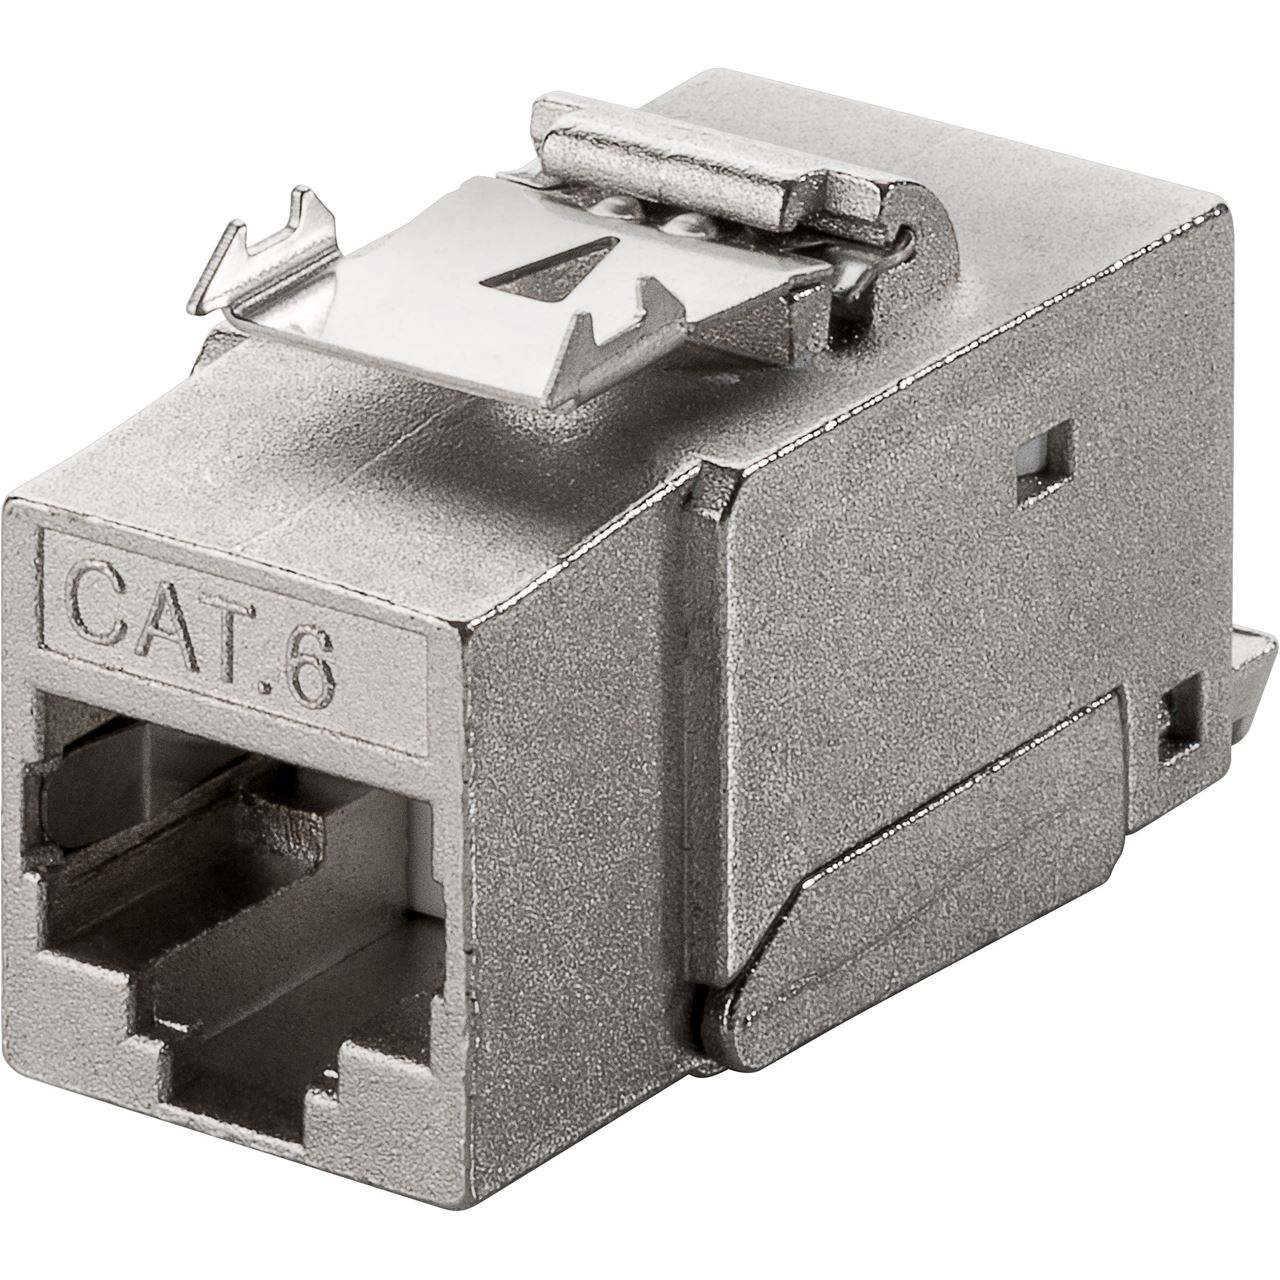 Connections Connections Good Good JackCat6aUngeschirmt500mhz Rj45 Keystone roxCBde